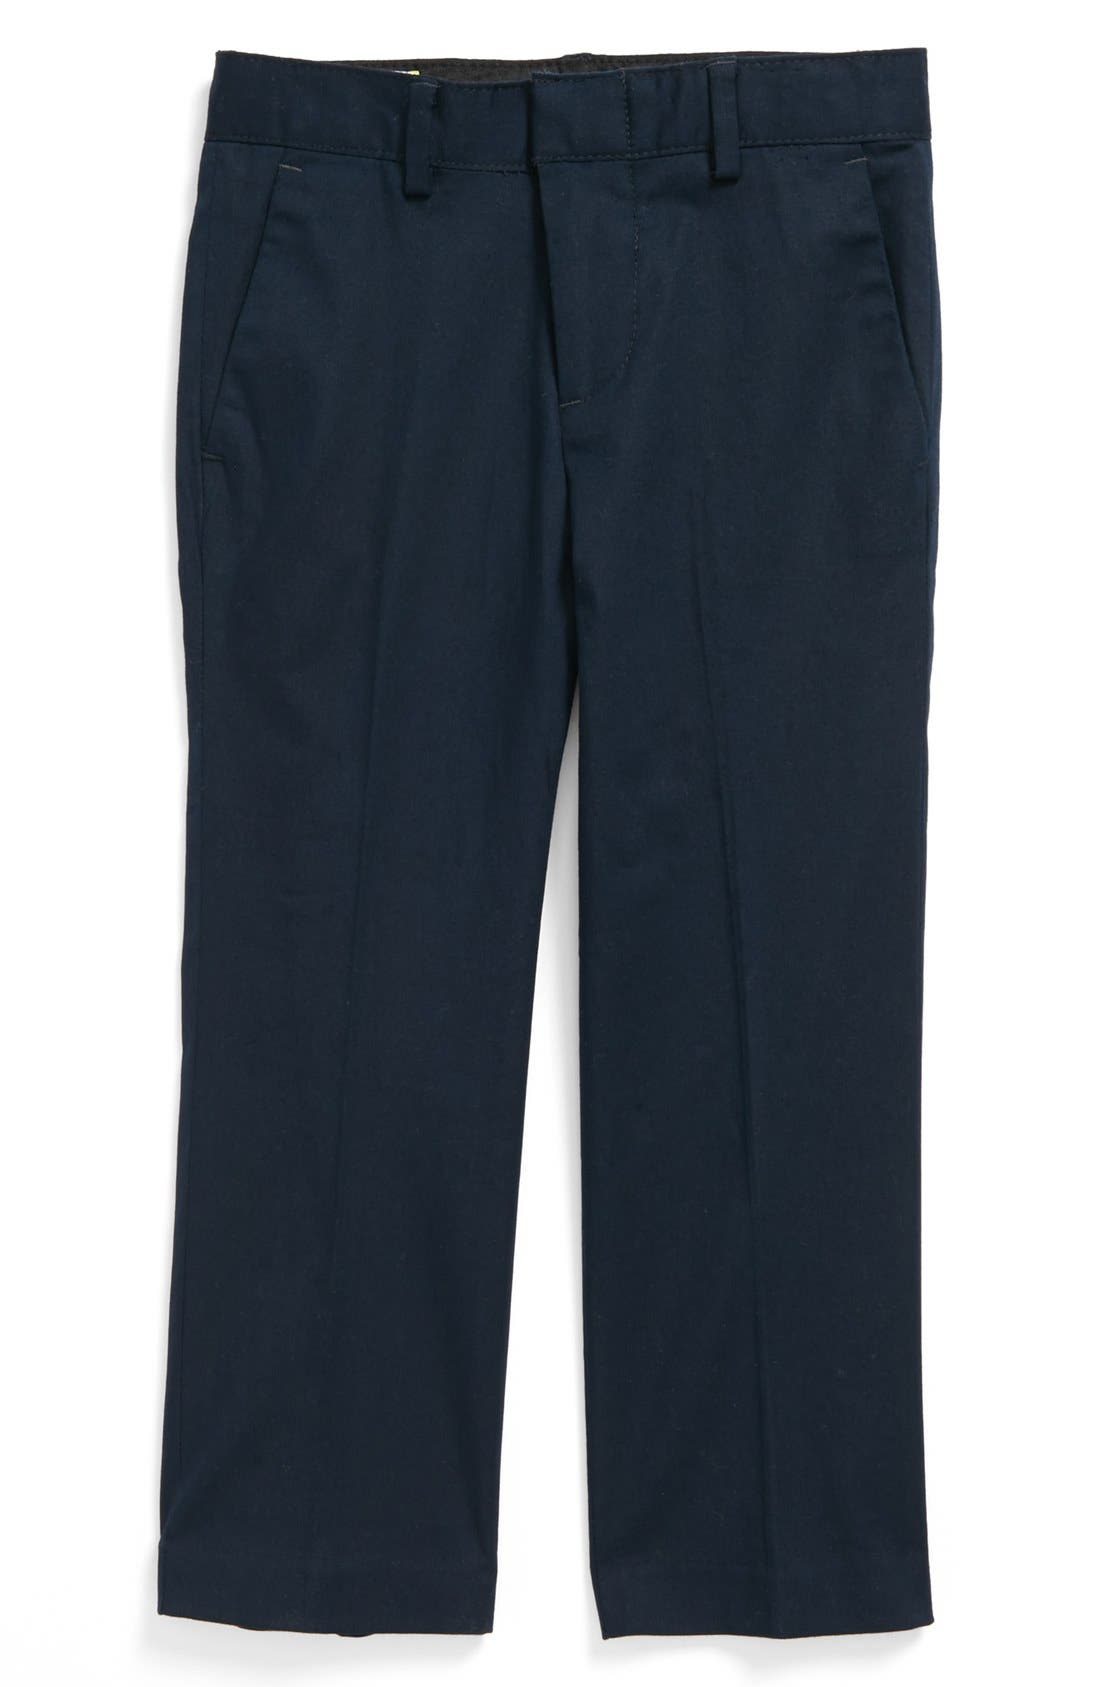 Alternate Image 1 Selected - C2 by Calibrate 'Sterling' Stretch Cotton Dress Pants (Toddler Boys)